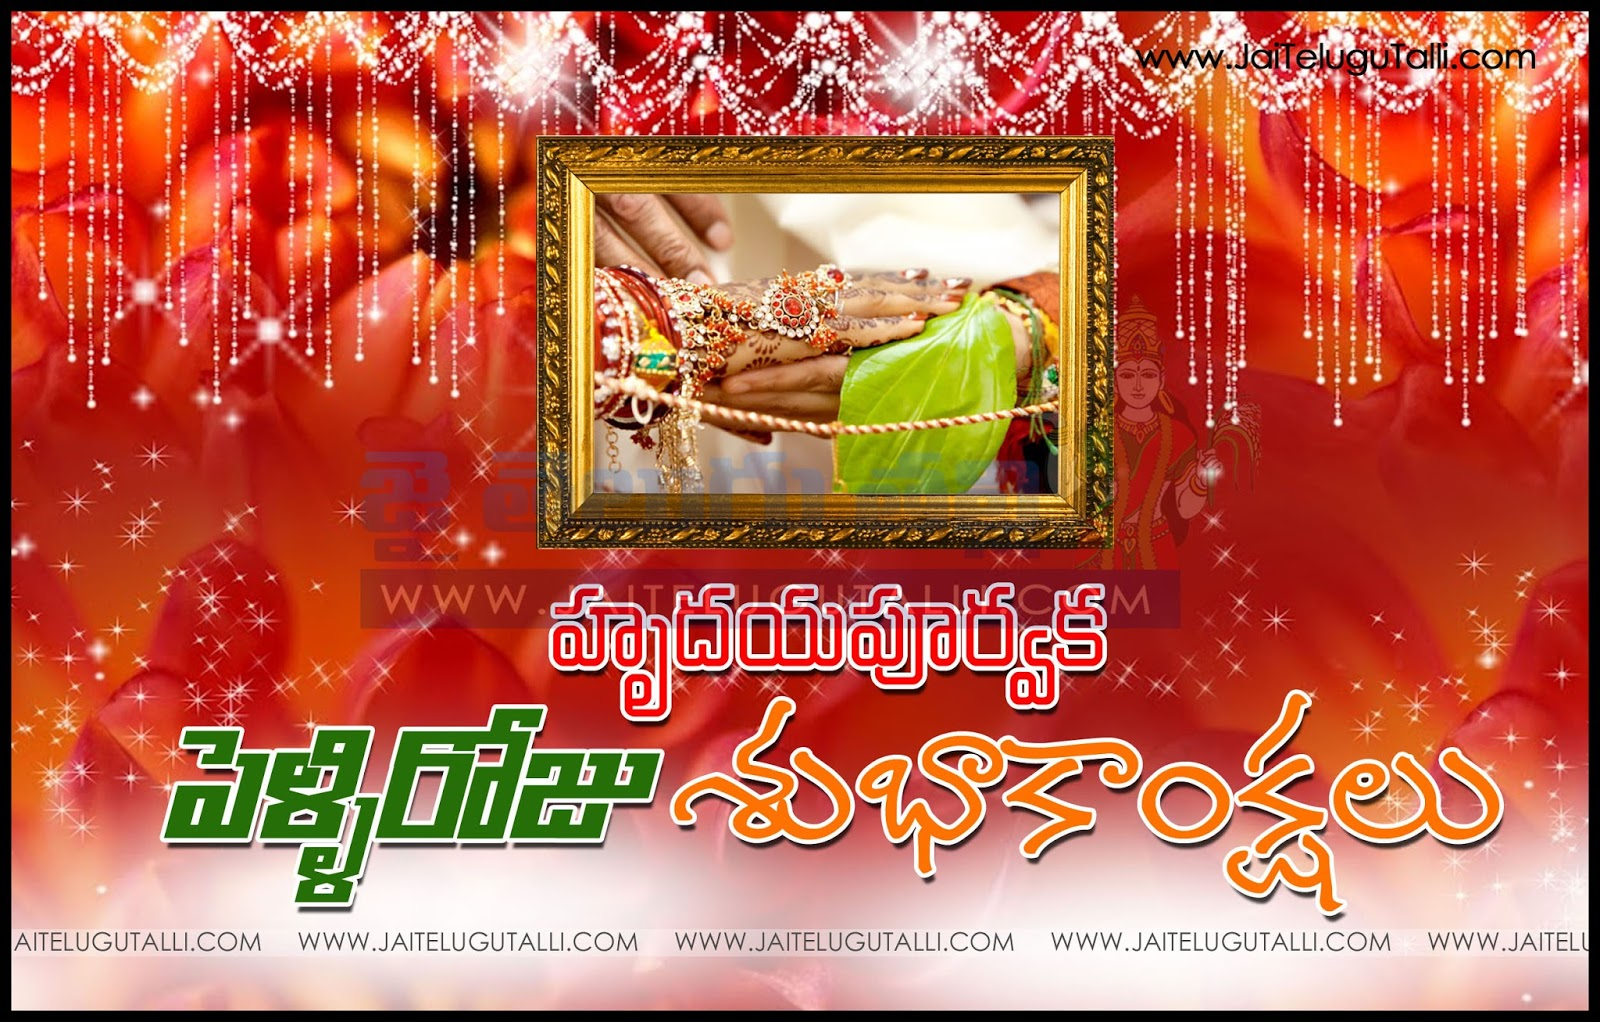 Happy Marriage Day Celebration Wishes And Images Www